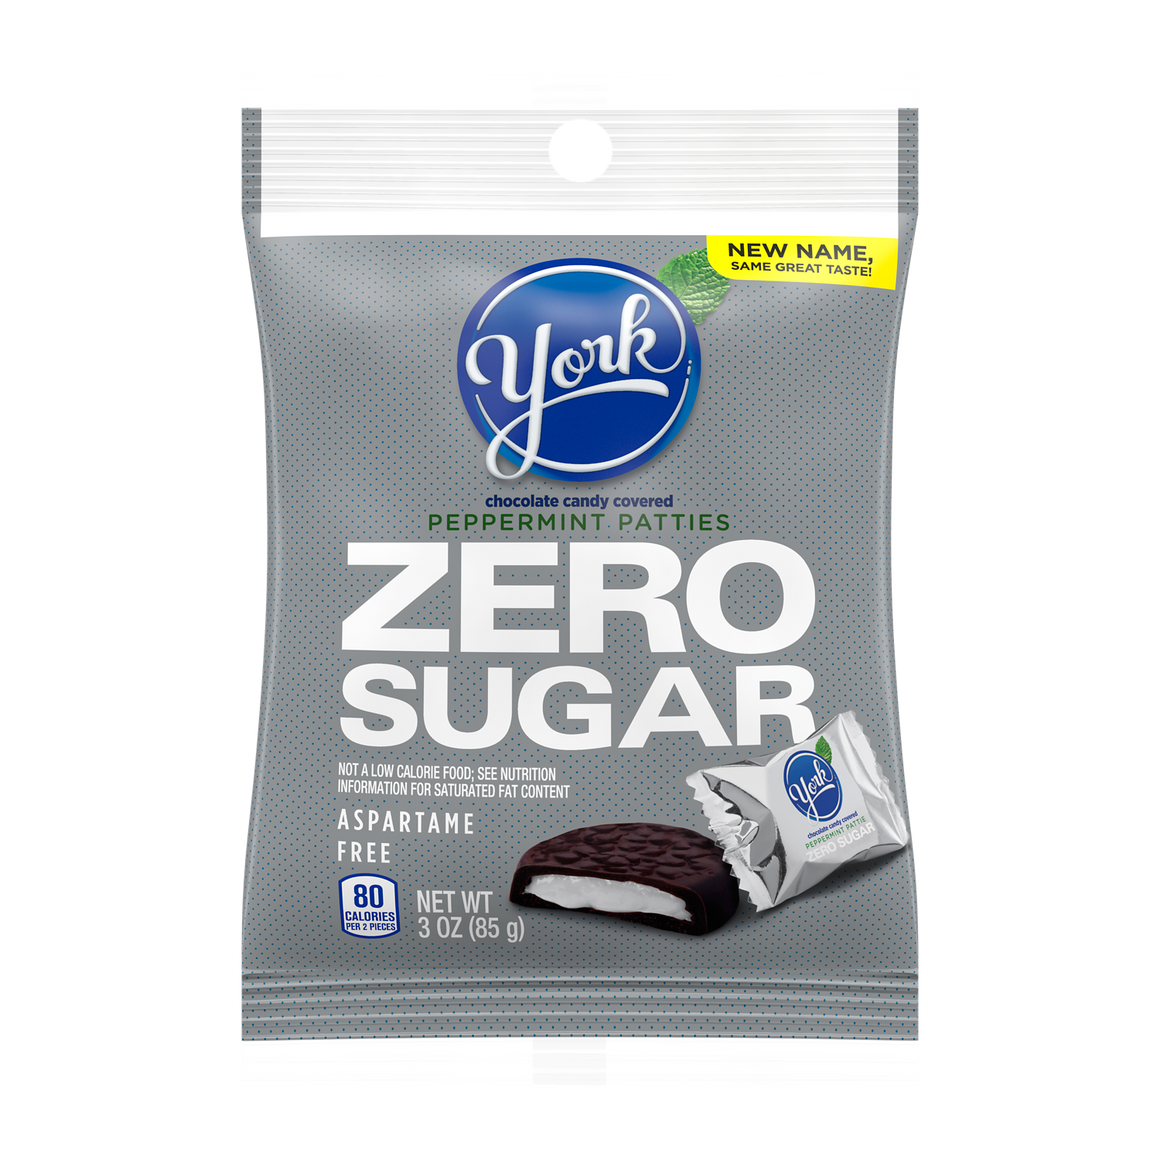 Hershey's - Sugar Free Candy - York Peppermint Patties - 3 oz Bag